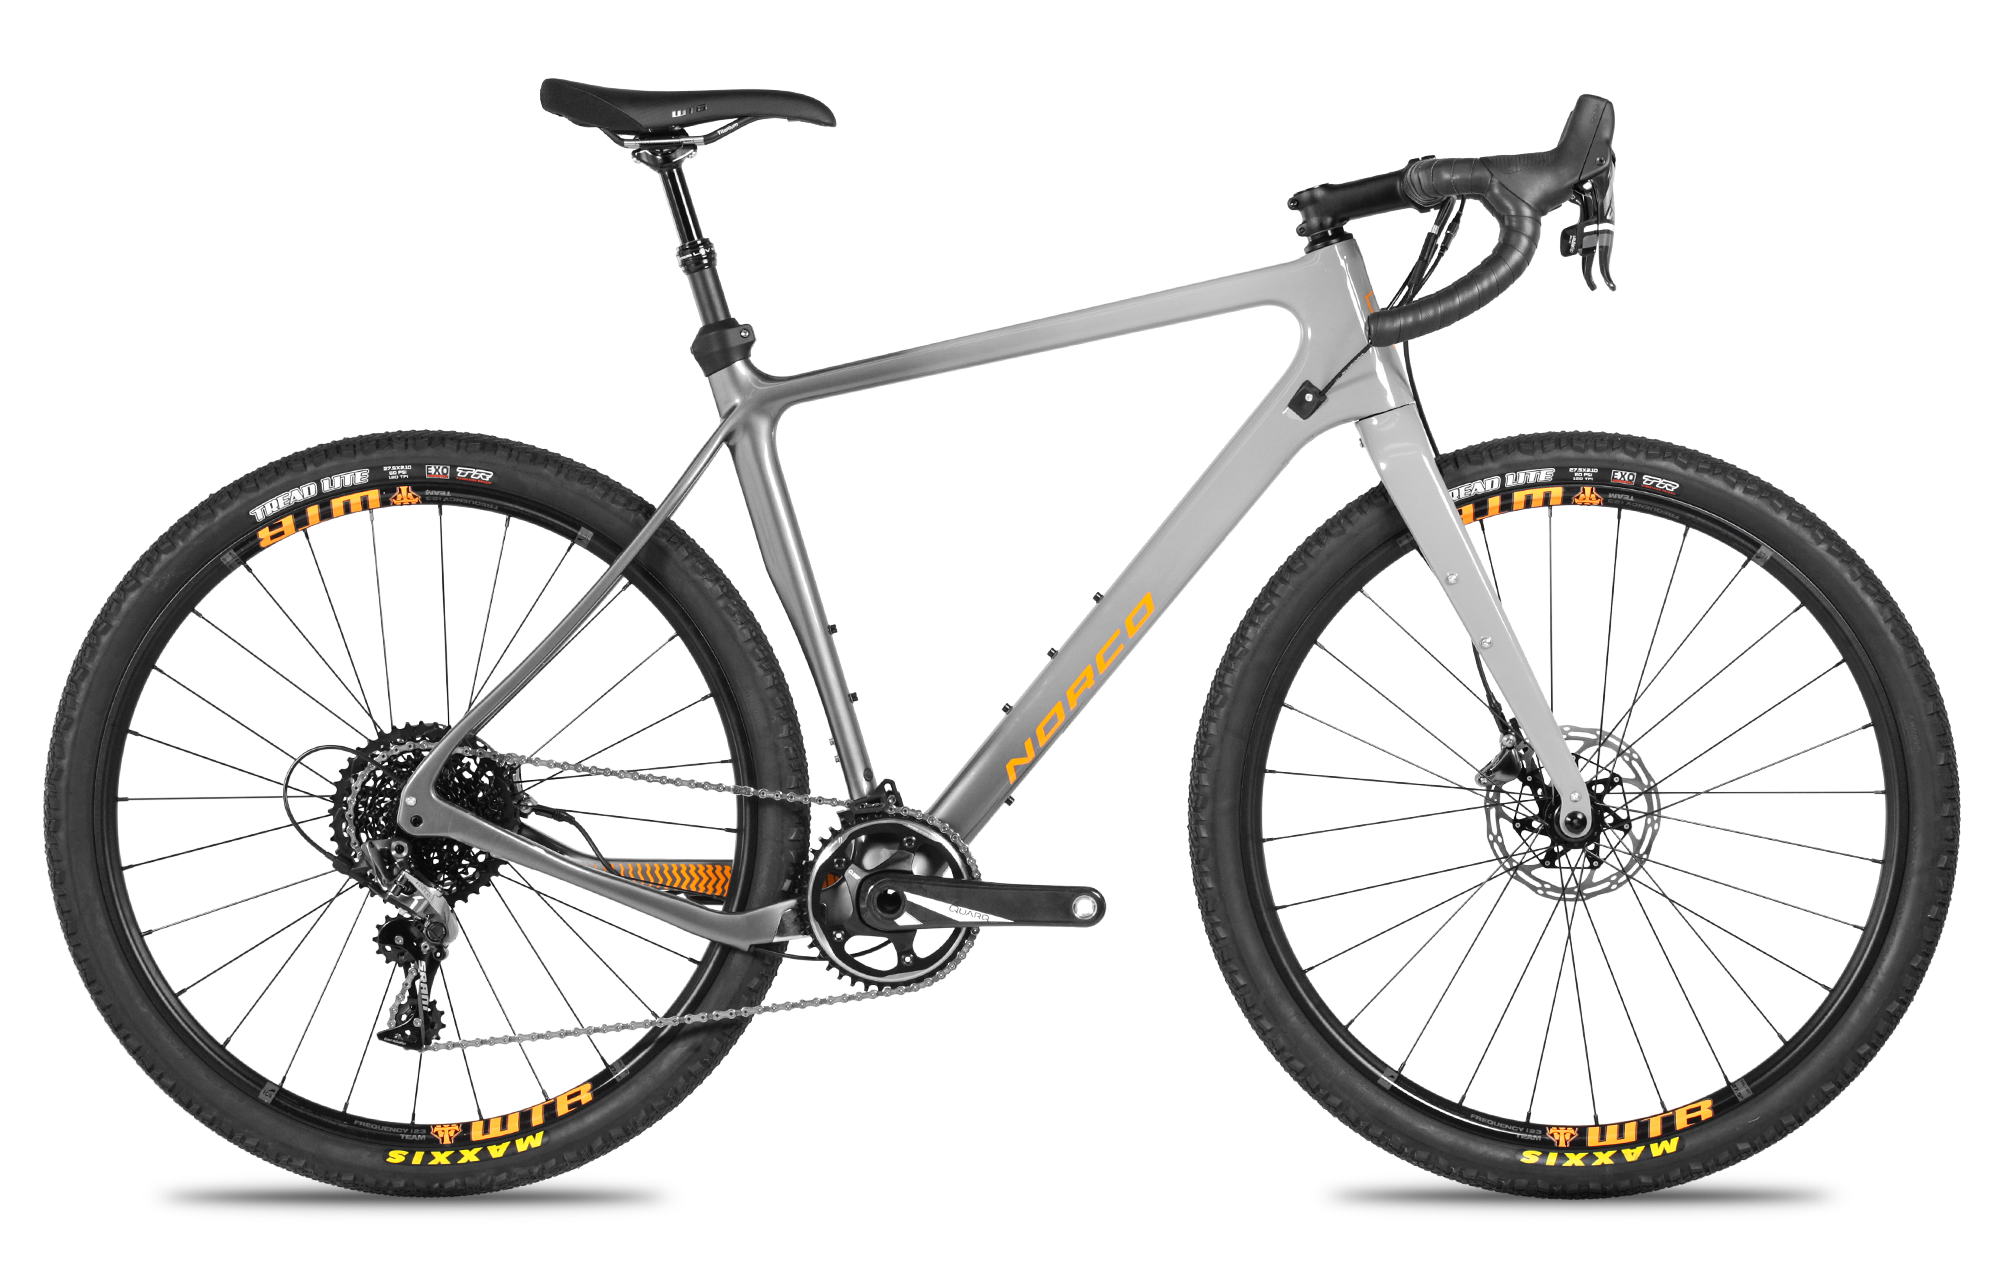 Clipart bike momentum. Norco bicycles search xr